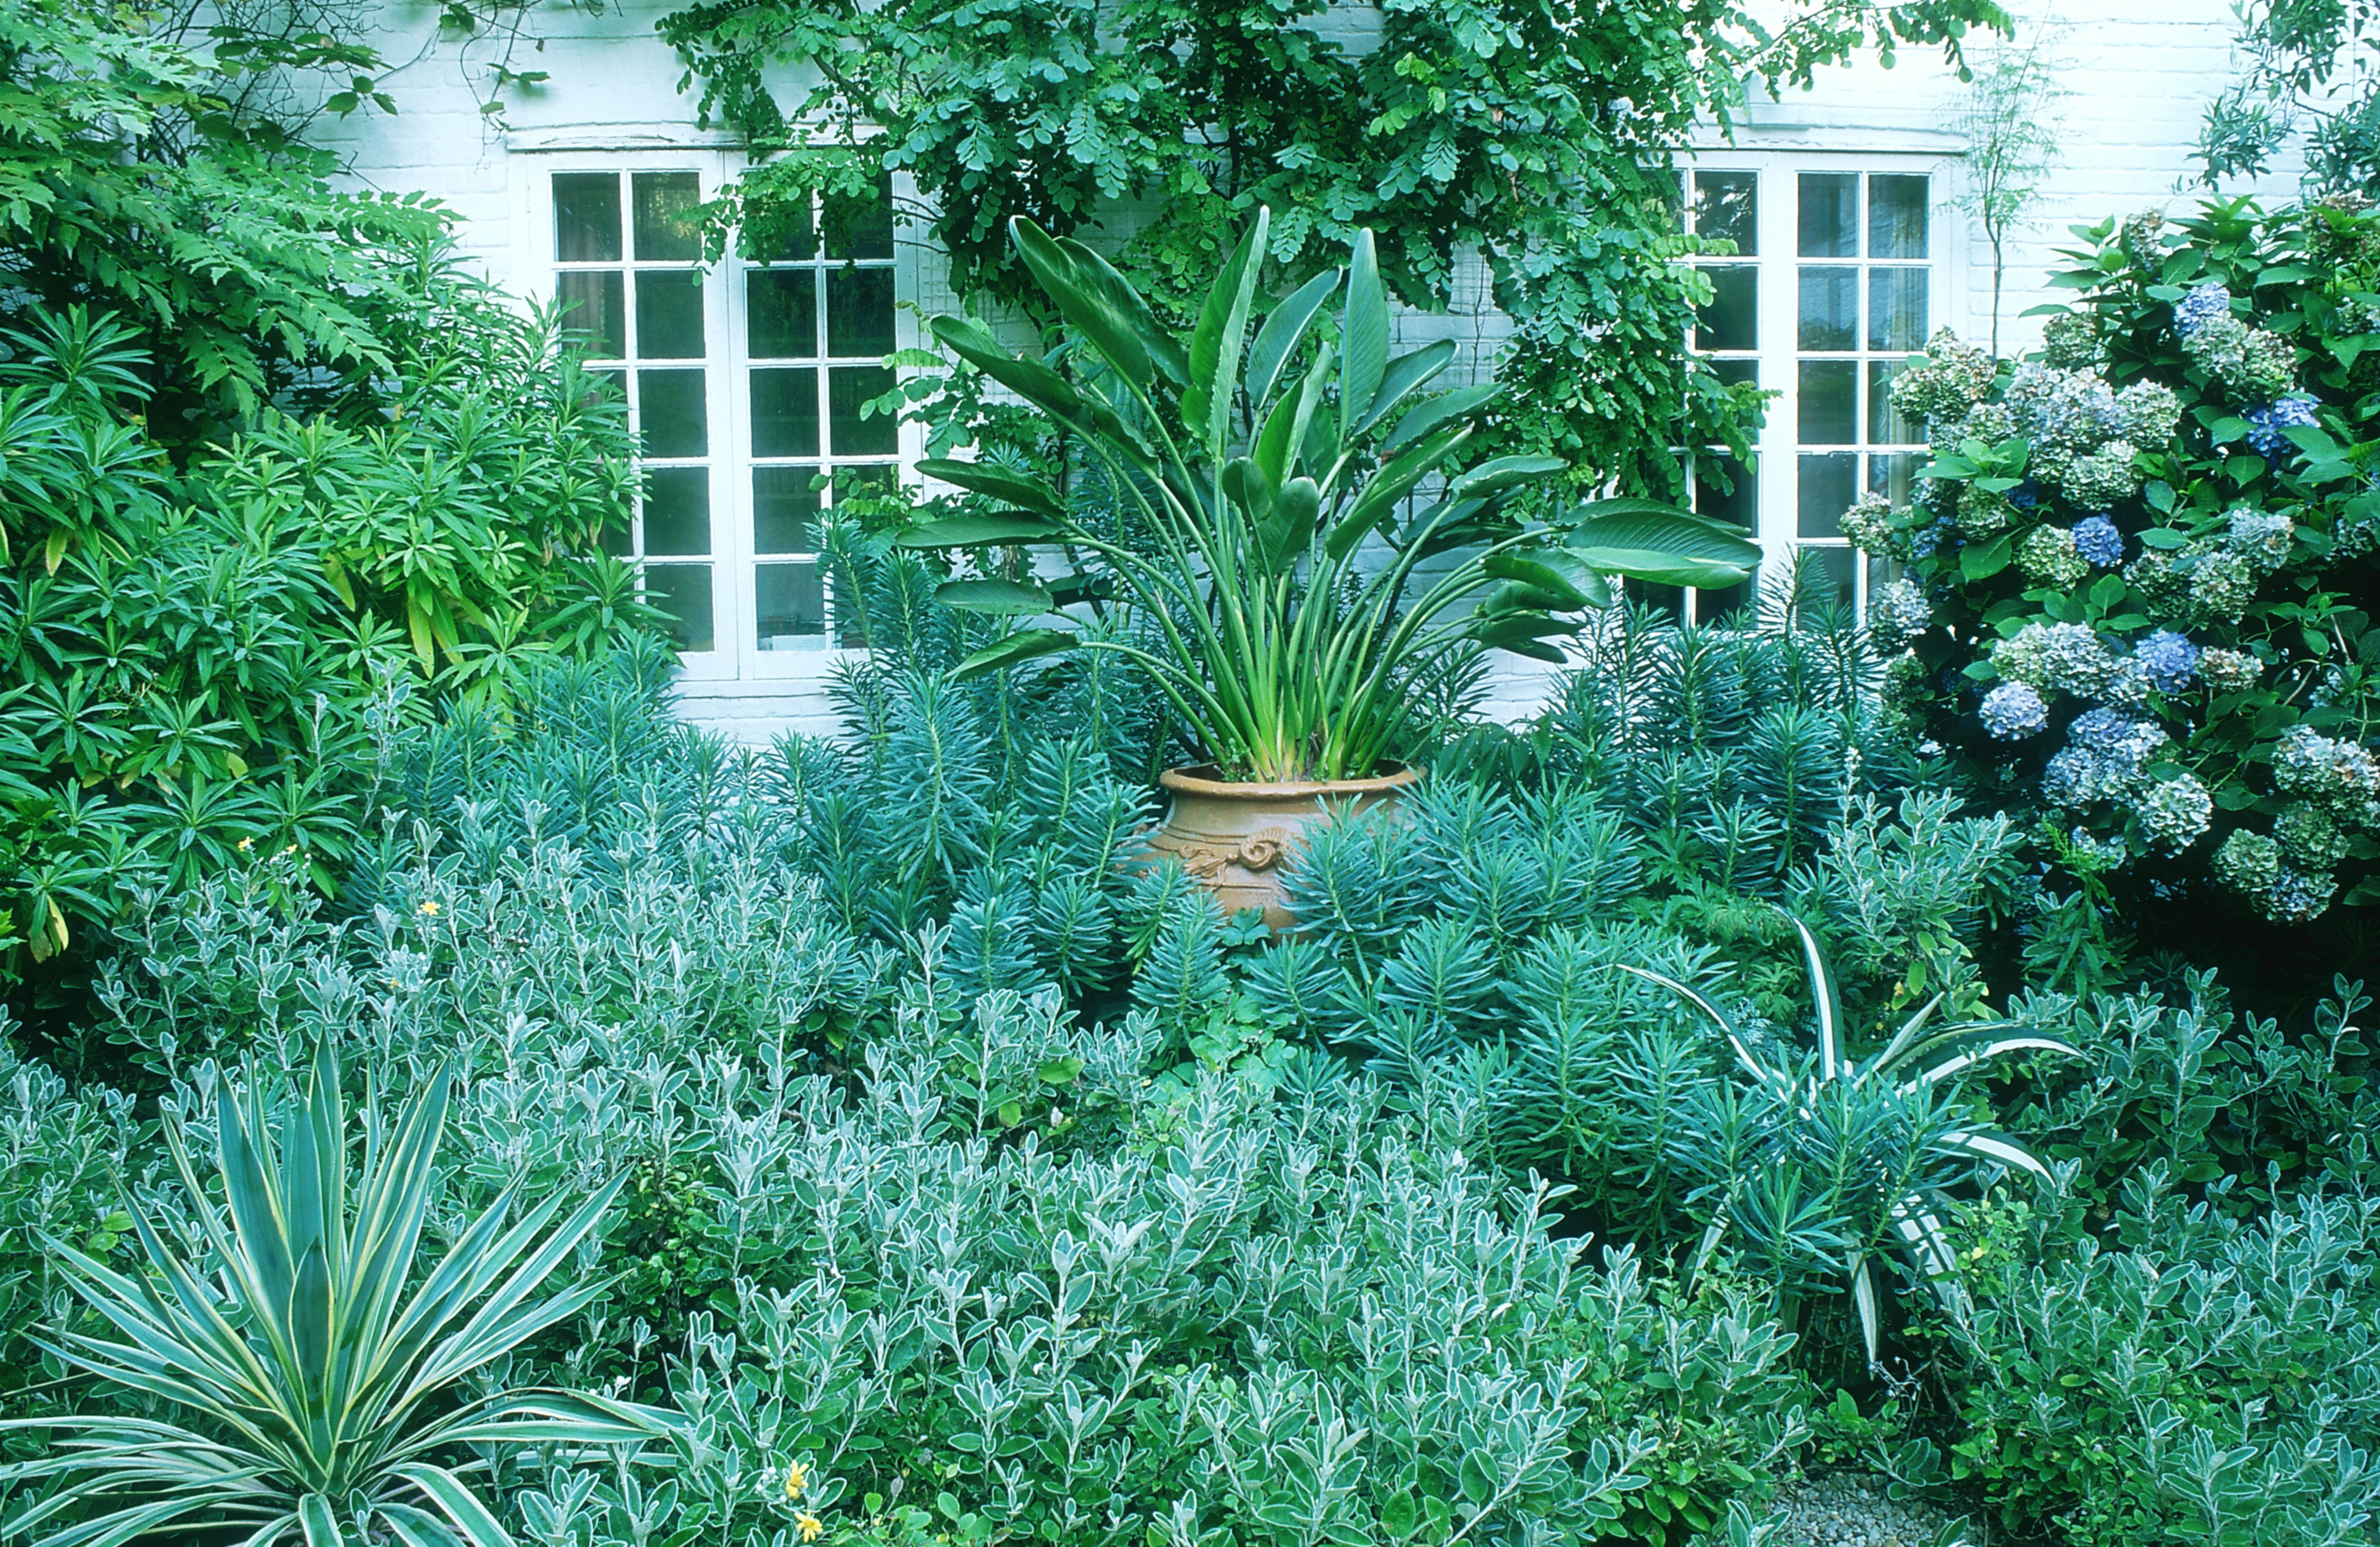 Home garden with foliage plants